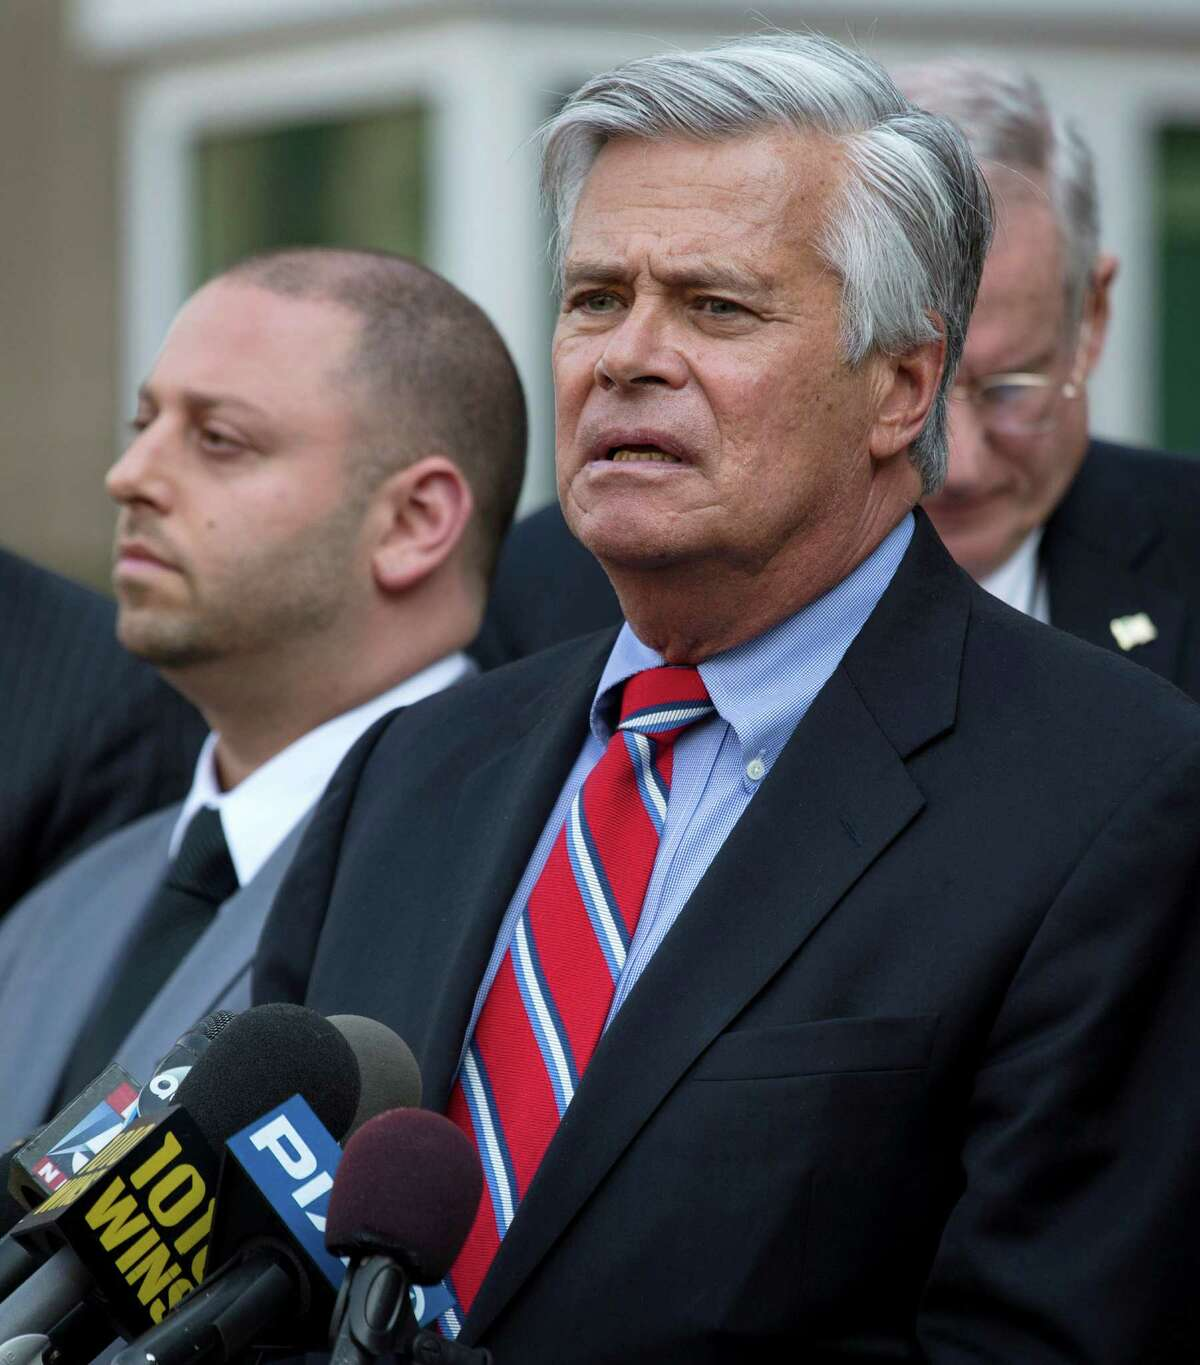 FILE- In this May 4, 2015 file photo, New York Senate Majority Leader Dean Skelos, right, speaks alongside his son Adam after their arraignment on federal charges including extortion and soliciting bribes. Dean Skelos, who was born, raised and still lives in Rockville Centre, said that despite growing pressure for him to resign, he is getting strong support from his Long Island neighbors. (AP Photo/Craig Ruttle, File) ORG XMIT: NYR401